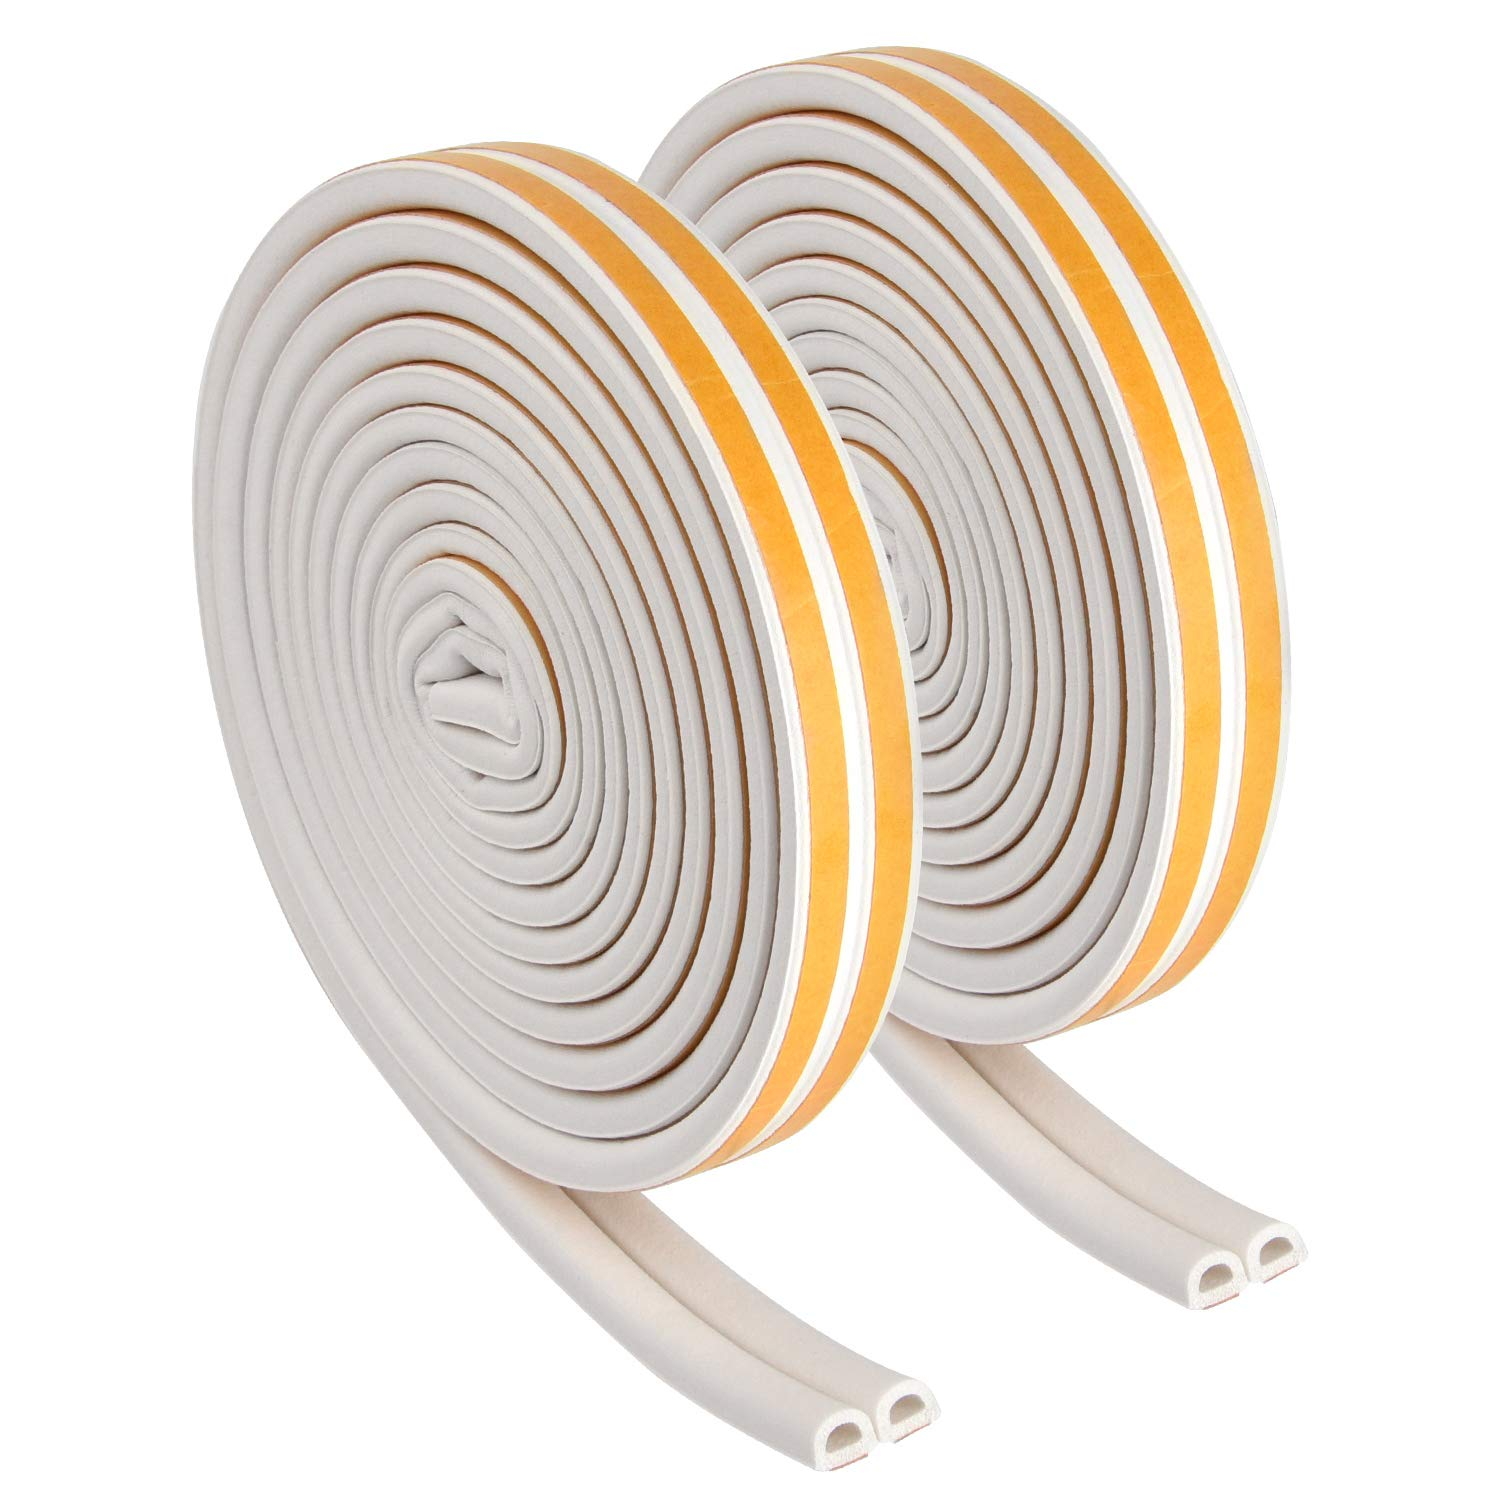 TUPARKA 2 Rolls Rubber Seal Strip D Type Foam Seal Tape Self-Adhesive Home Window Door Soundproofing Avoidance Weather Strip 12M(After Being Divided)